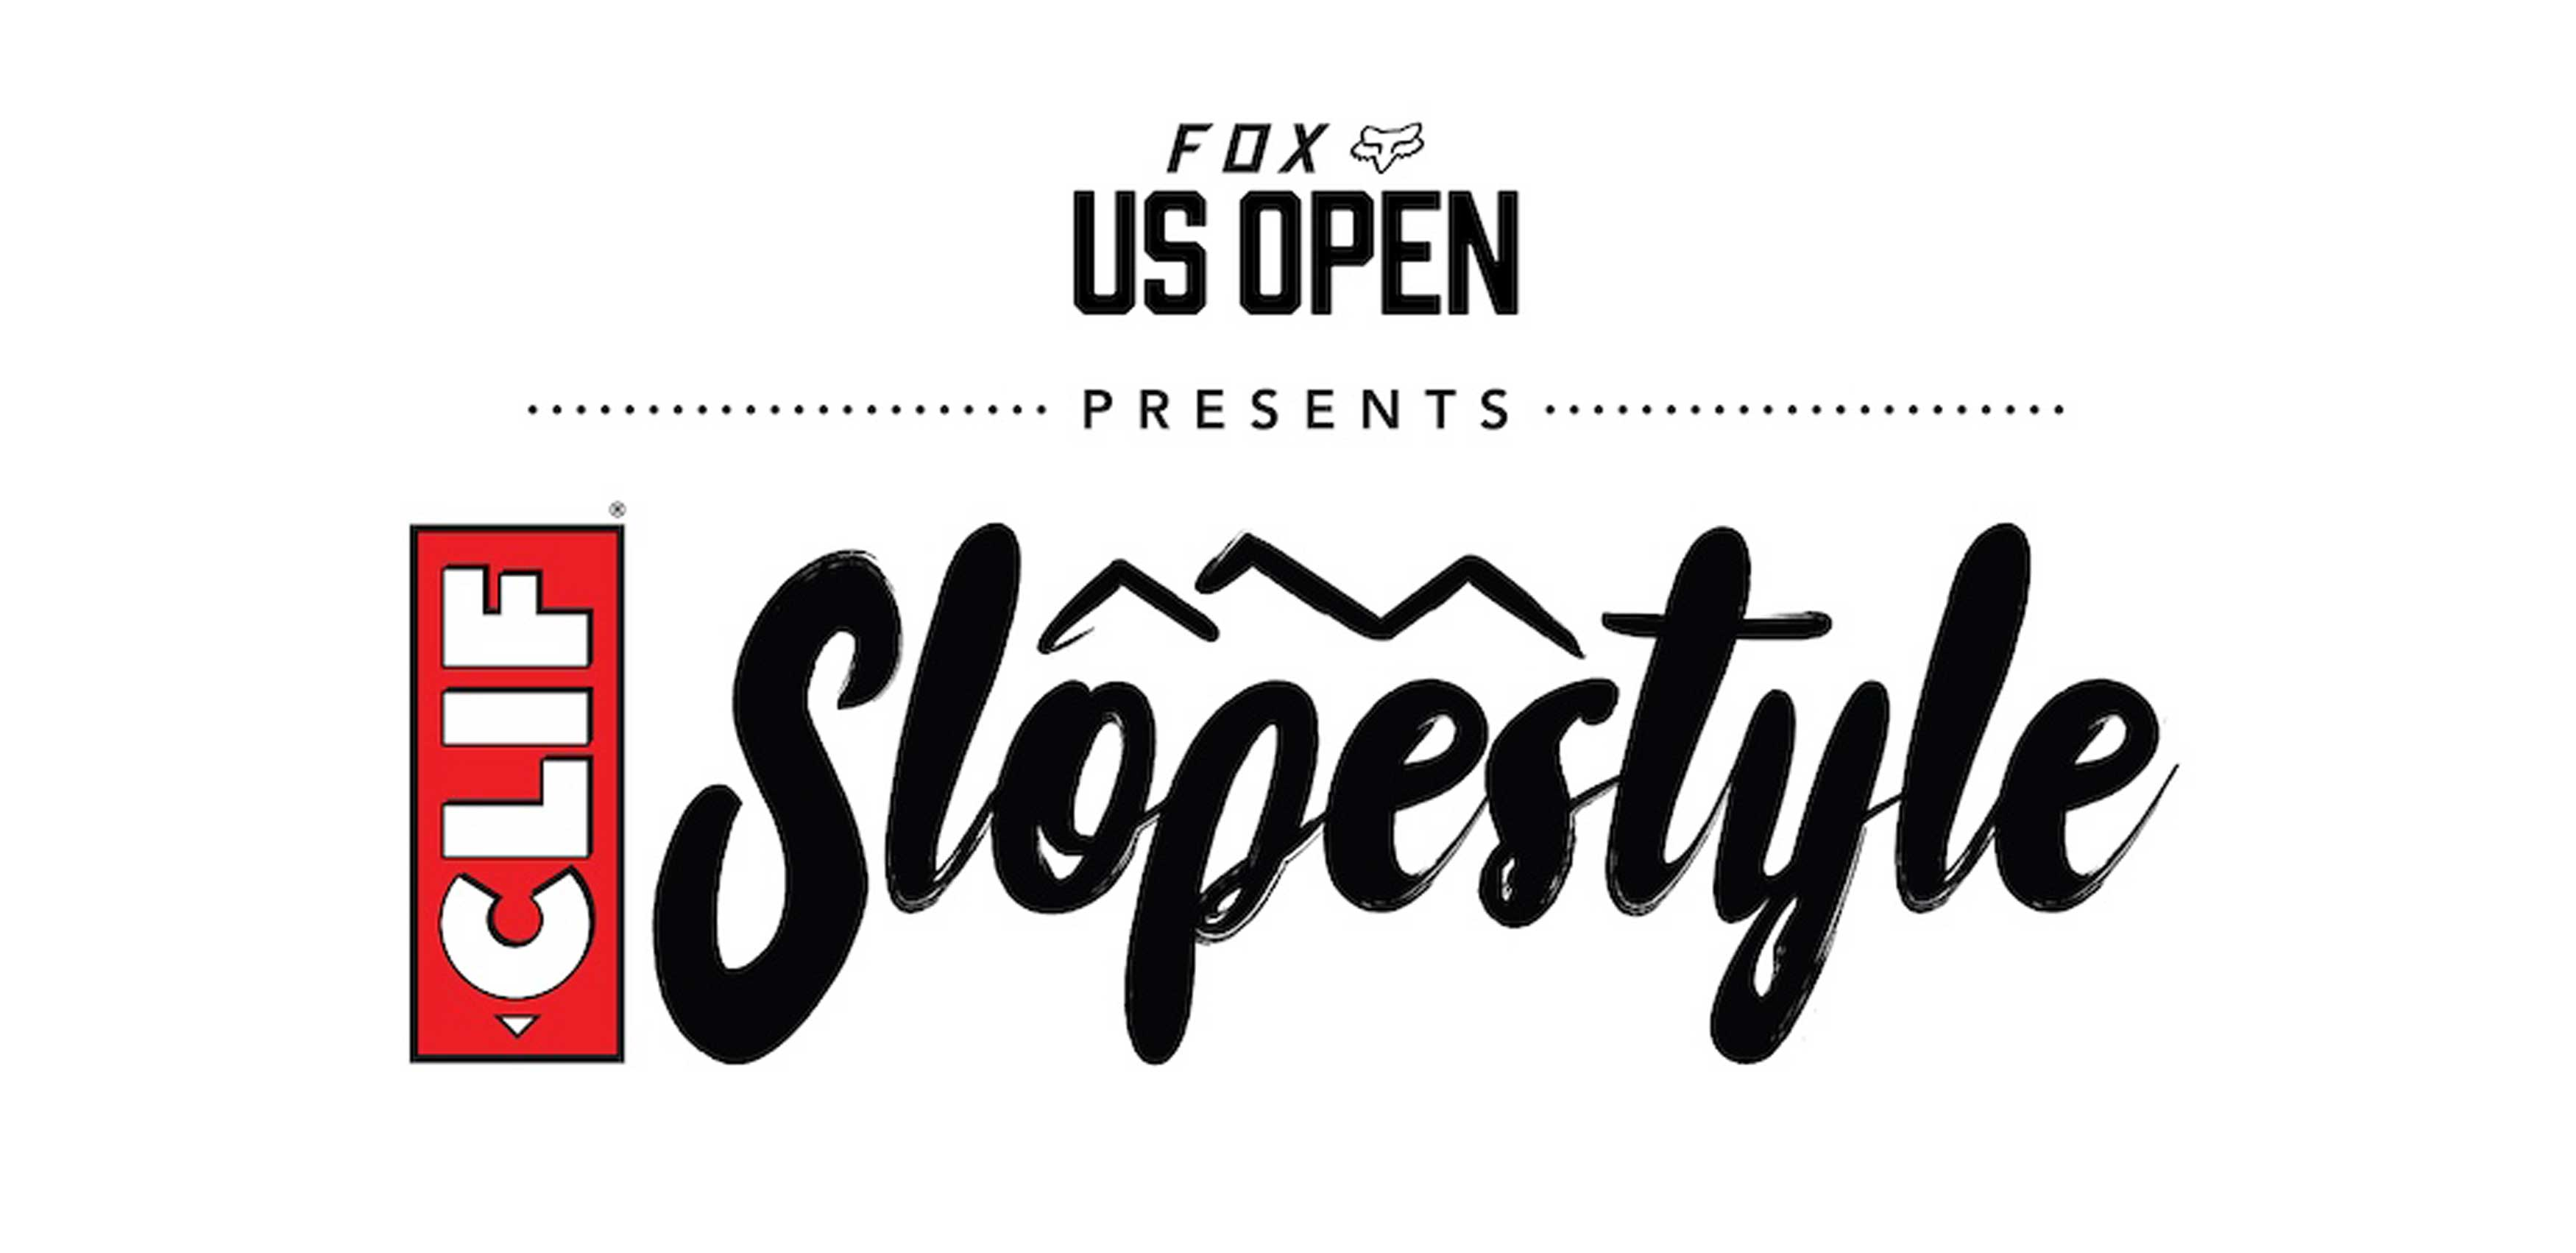 Fox US Open Slopestyle